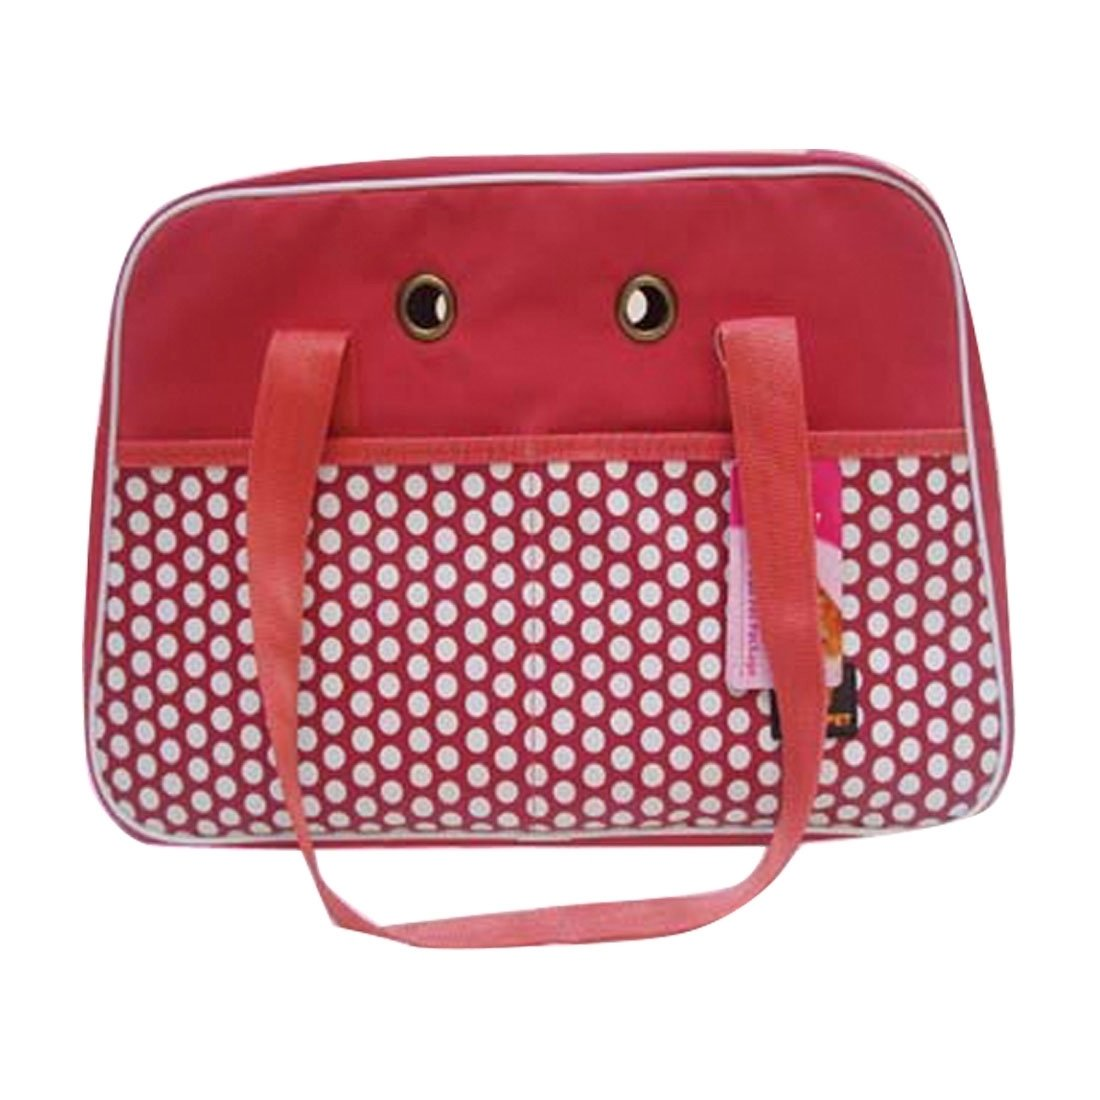 Red HHF Pet Supplies Portable Pet Handbag Bag Show Head for Cat Dog and oher Pets, DODOPET CK-416 Small Size 45  28  18cm (color   Red)